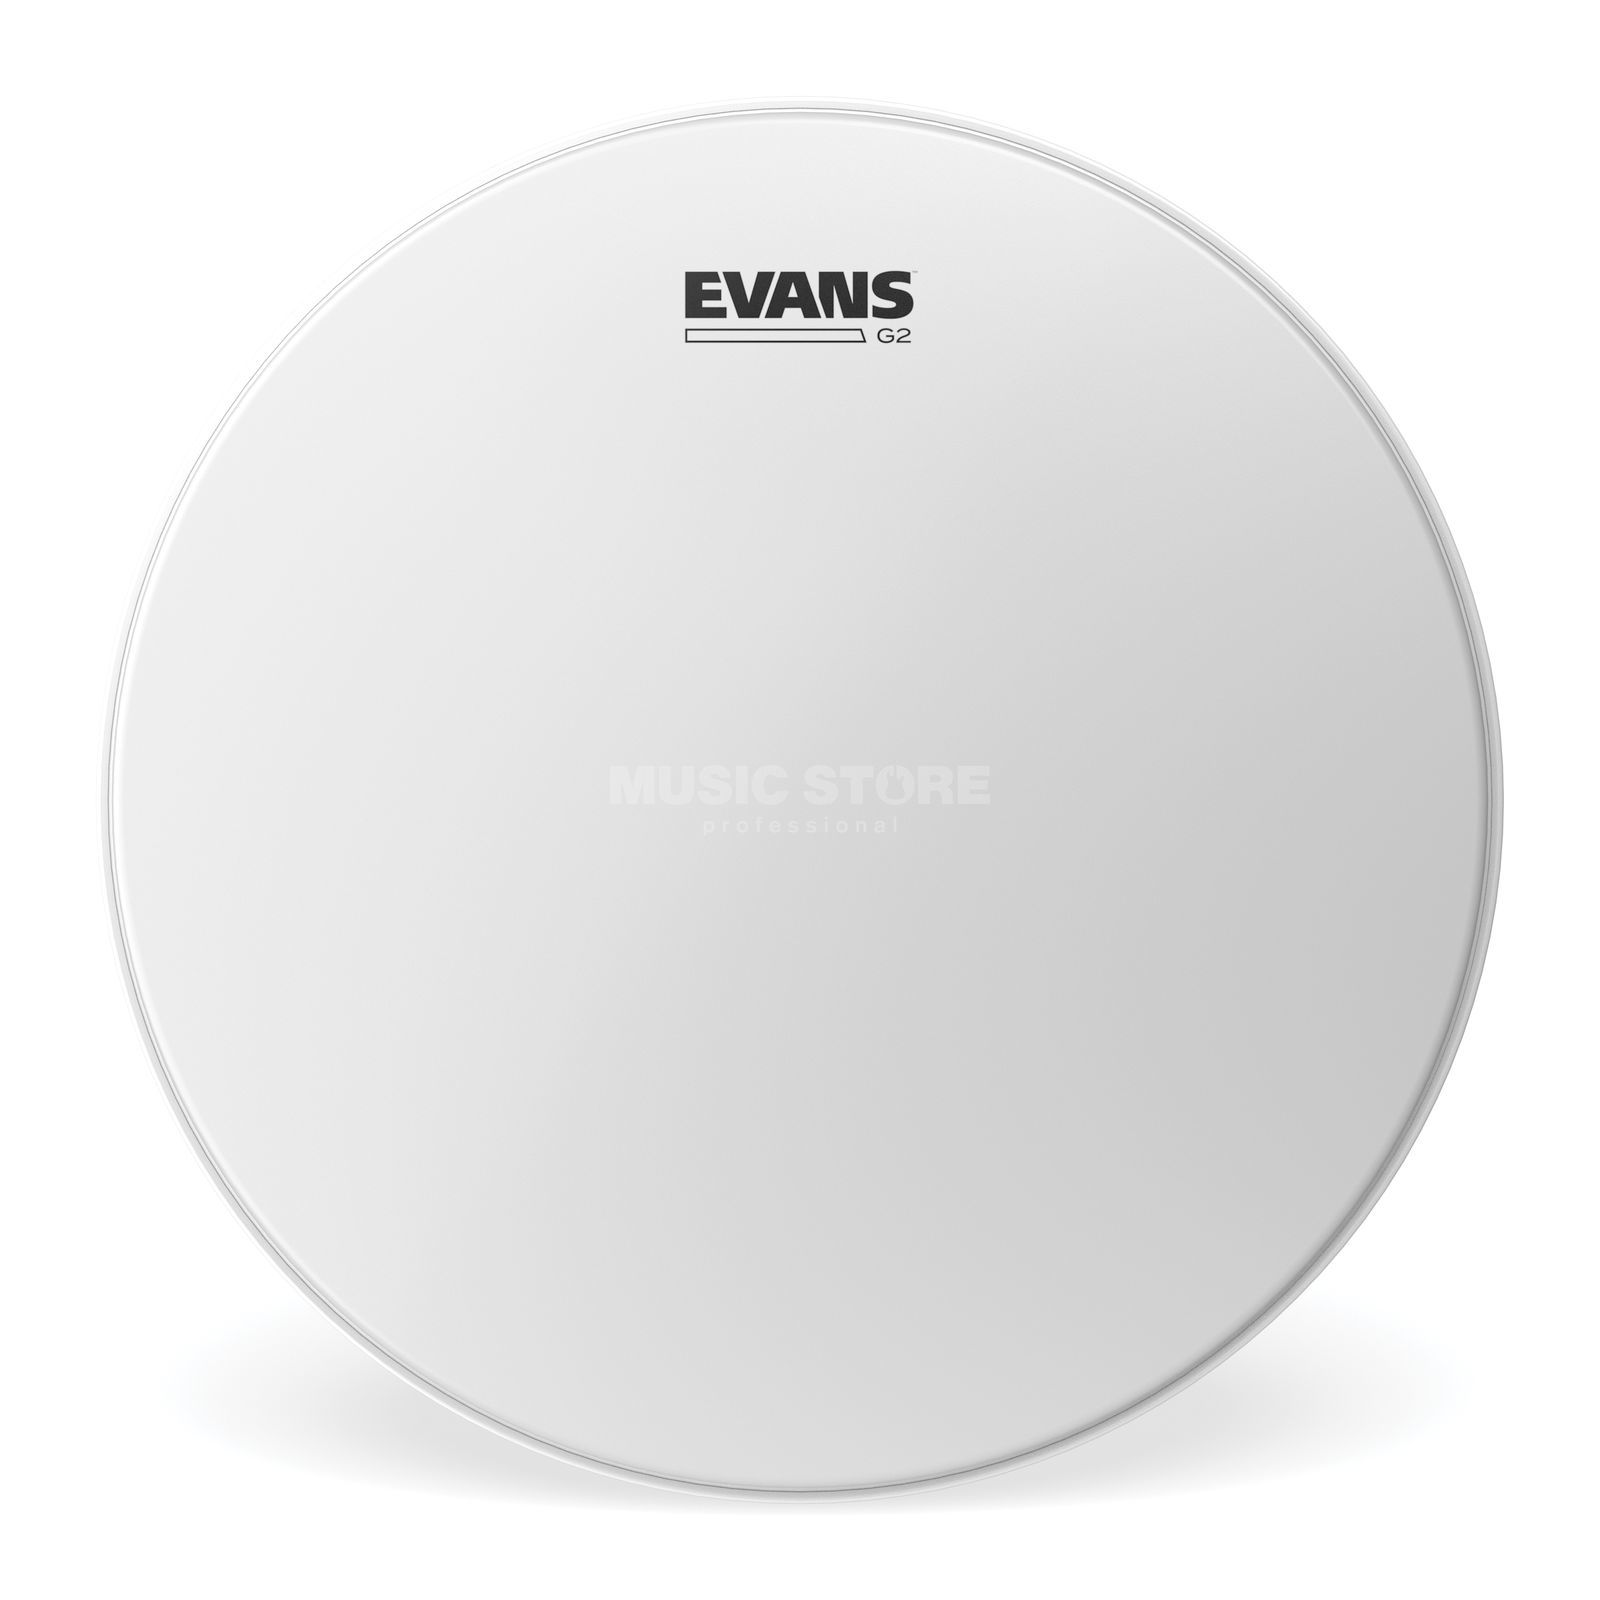 "Evans G2 Coated 16"", B16G2, Tom Batter Изображение товара"